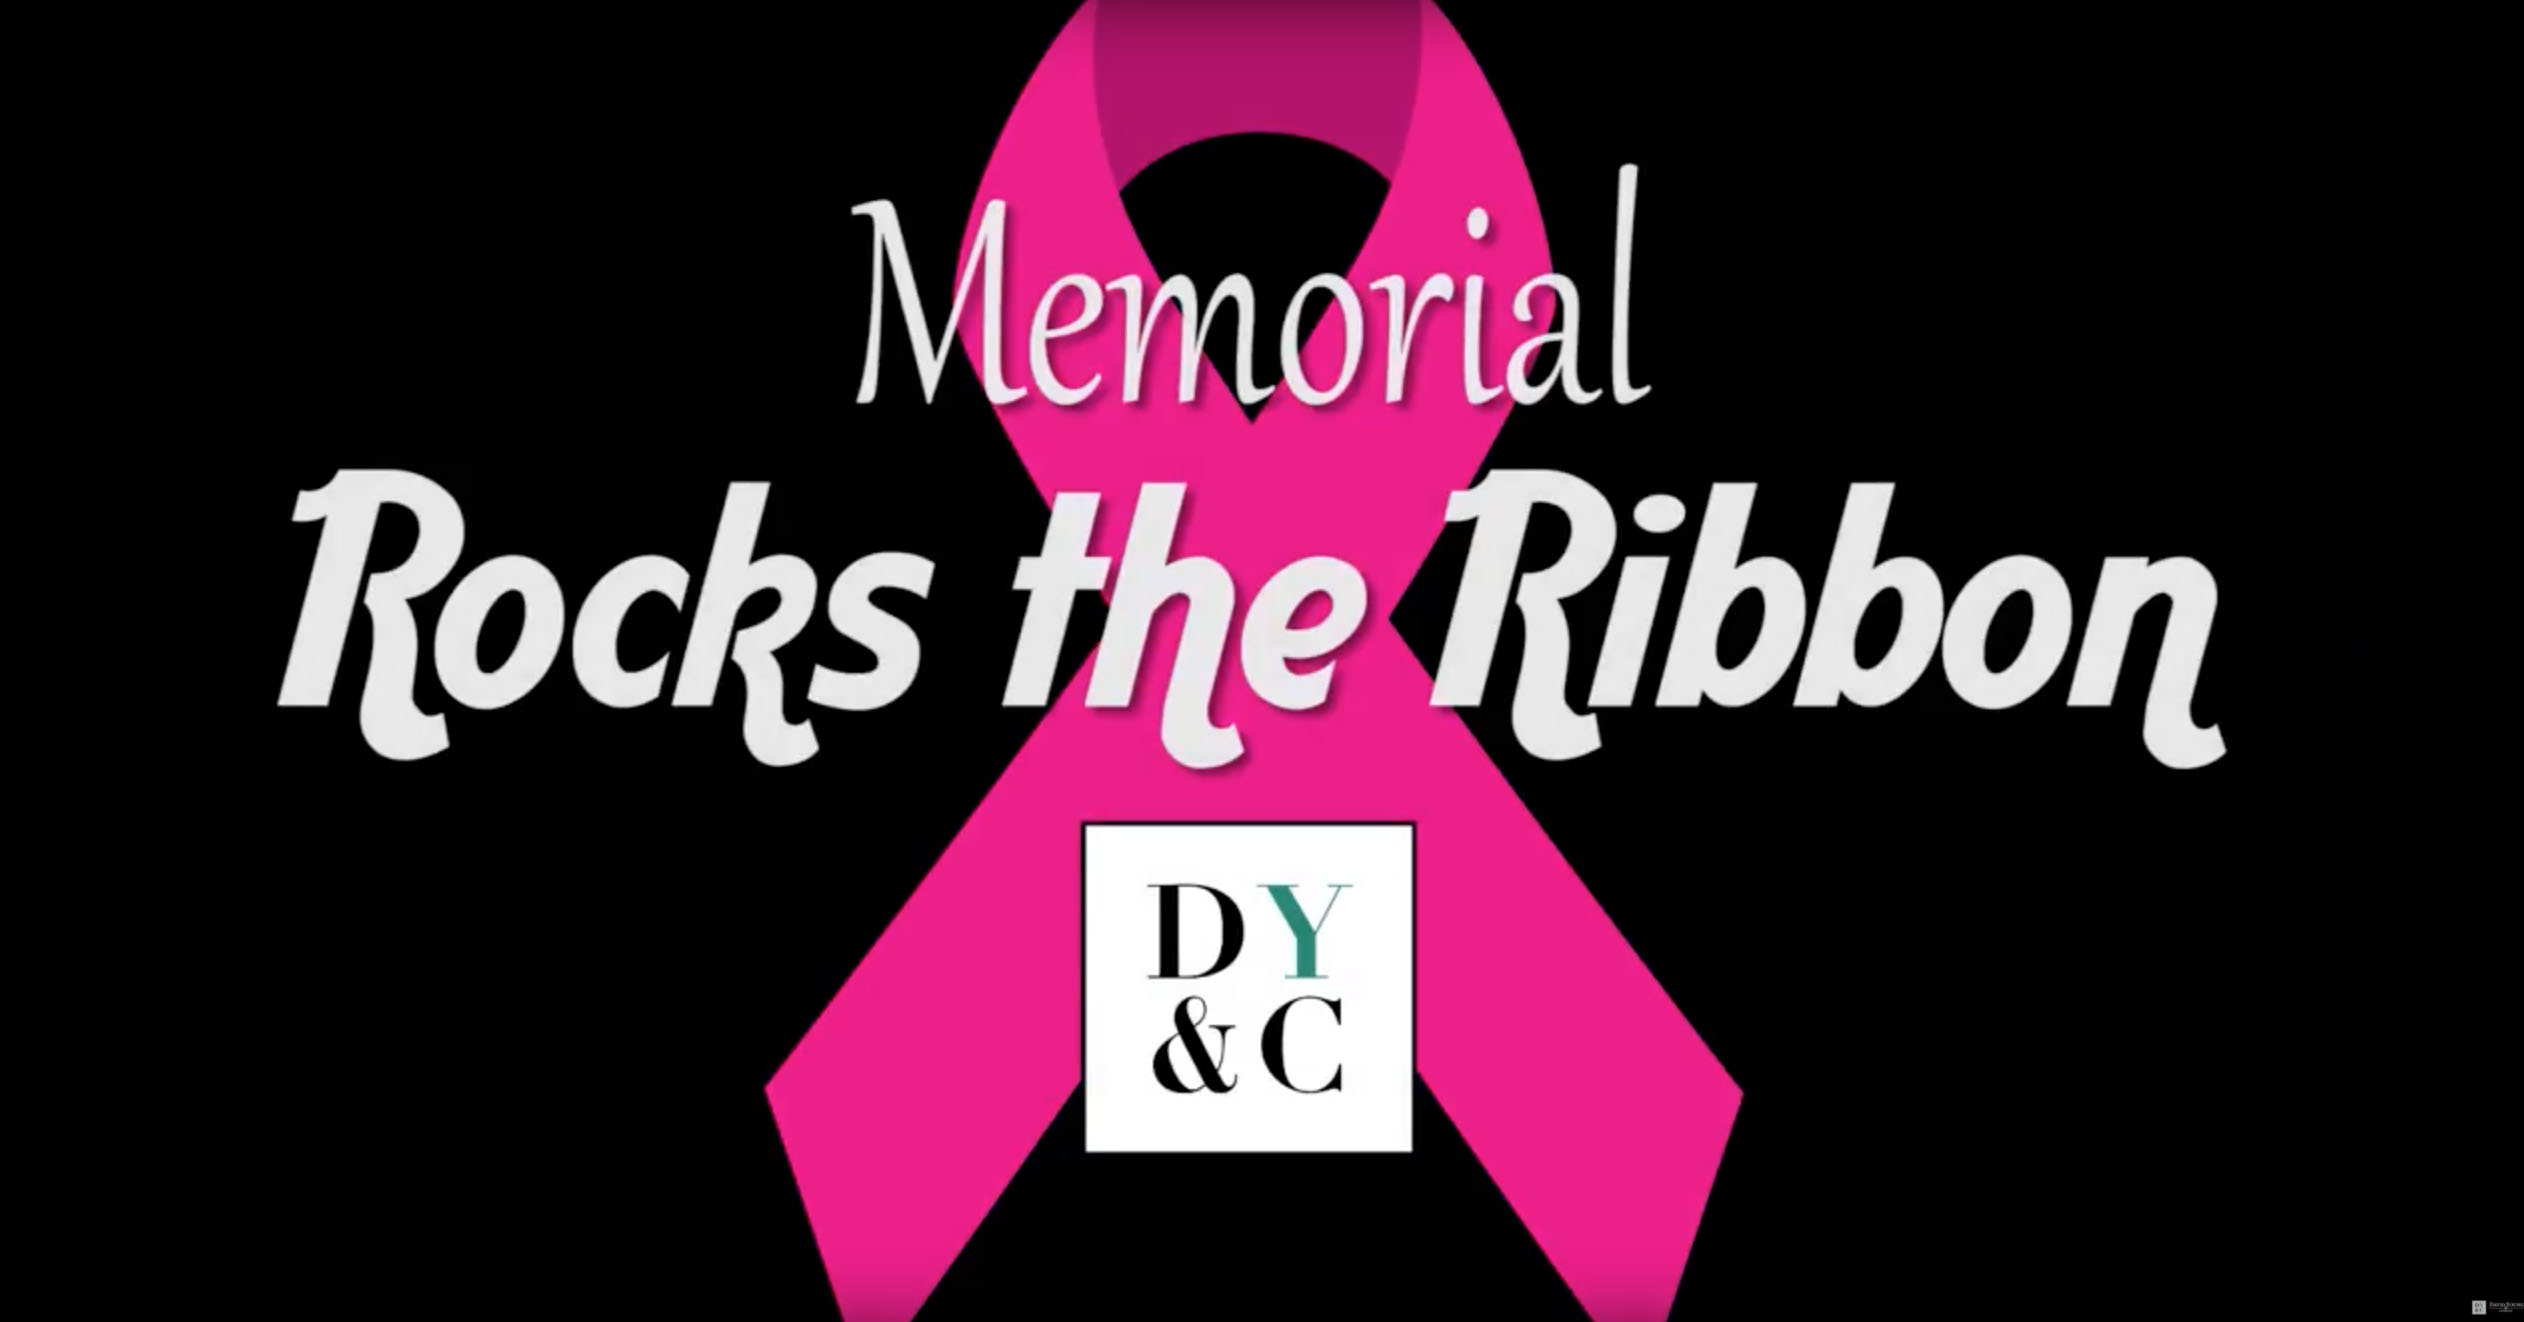 Memorial Rocks The- Ribbon